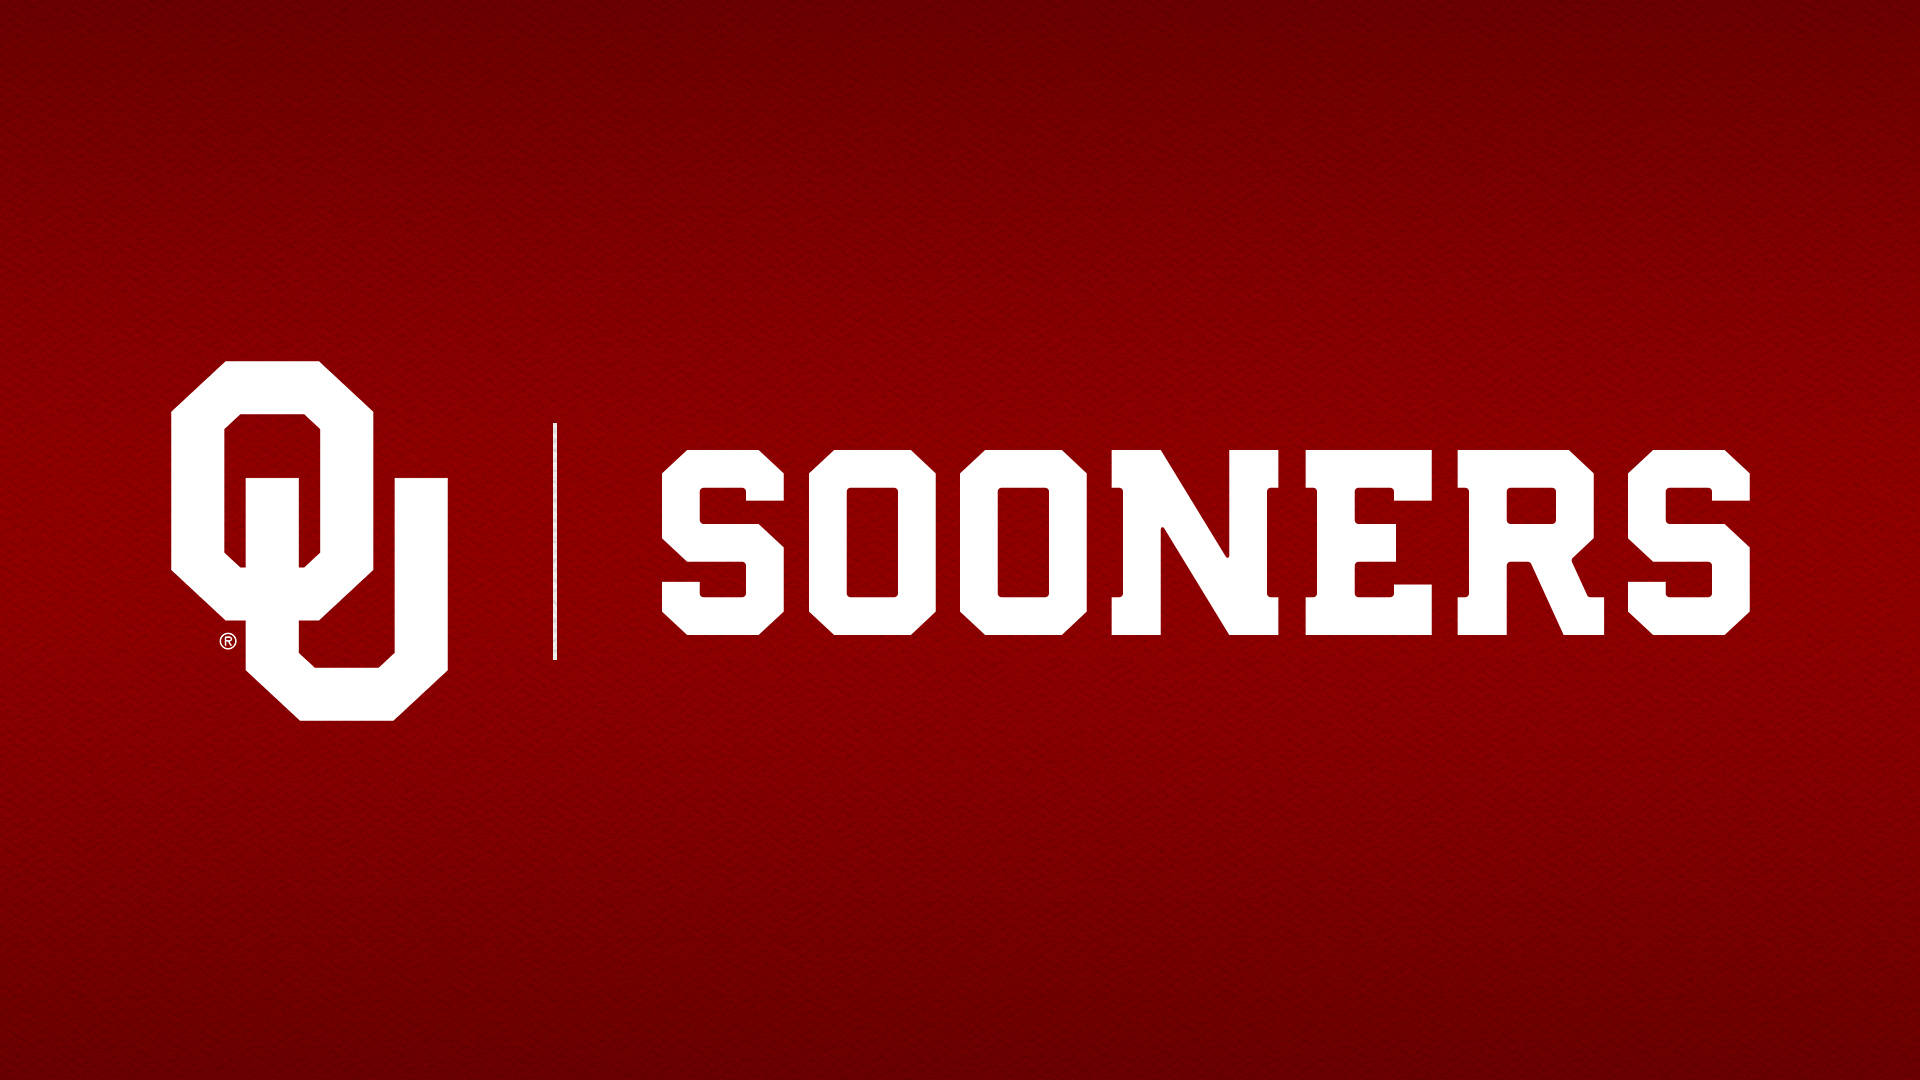 Oklahoma University Sooners